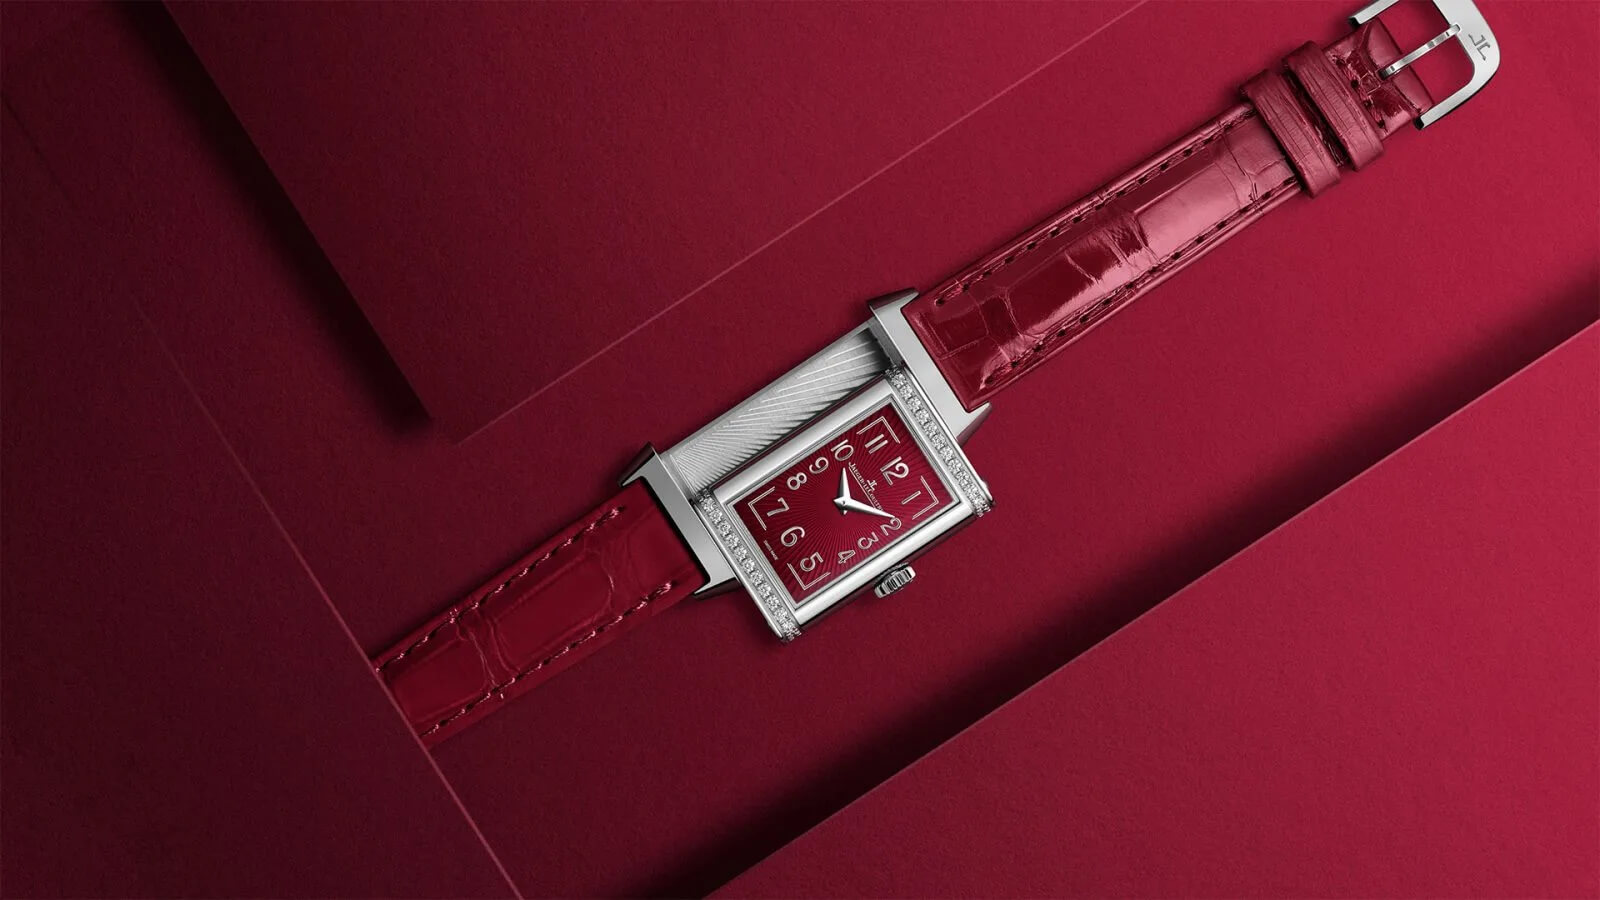 jaeger-lecoultre_reverso-one_gallery_image1-1600x900-jpg